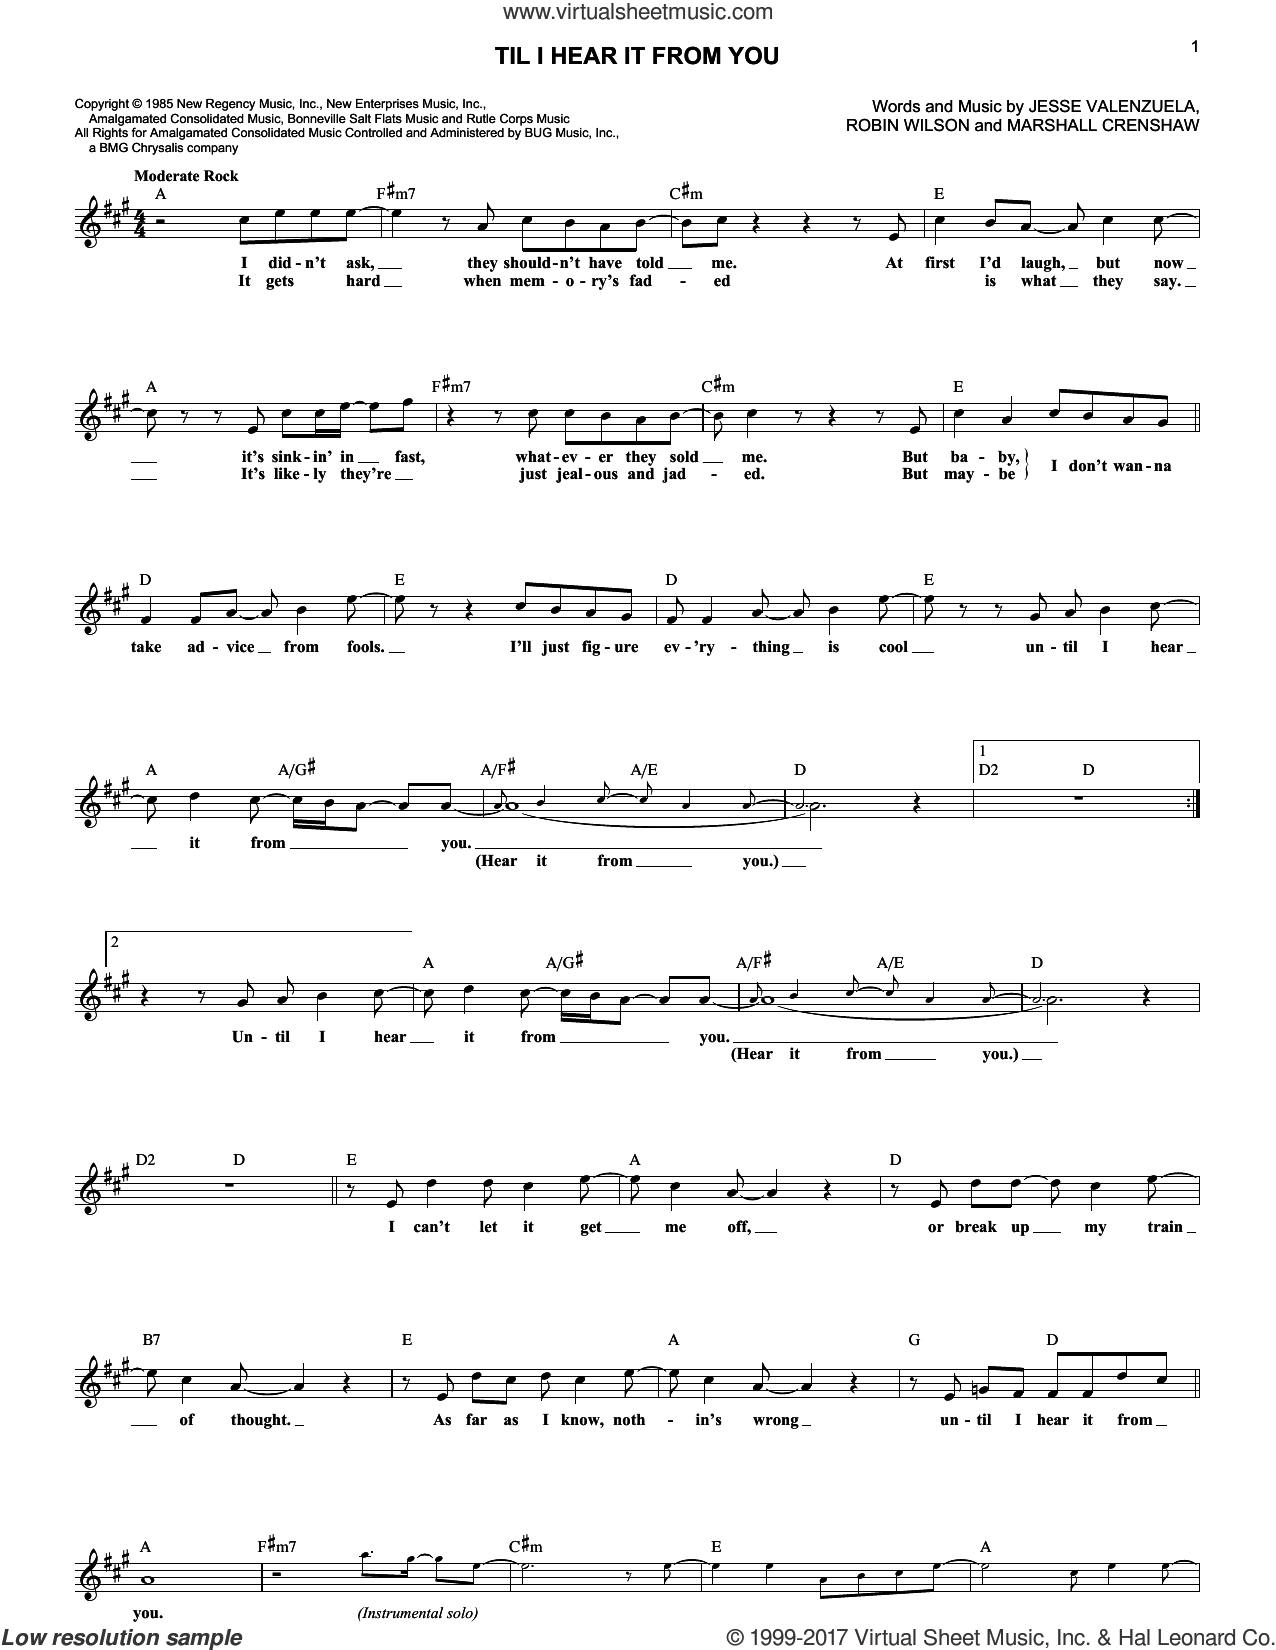 Til I Hear It From You sheet music for voice and other instruments (fake book) by Gin Blossoms, Jesse Valenzuela, Marshall Crenshaw and Robin Wilson, intermediate skill level